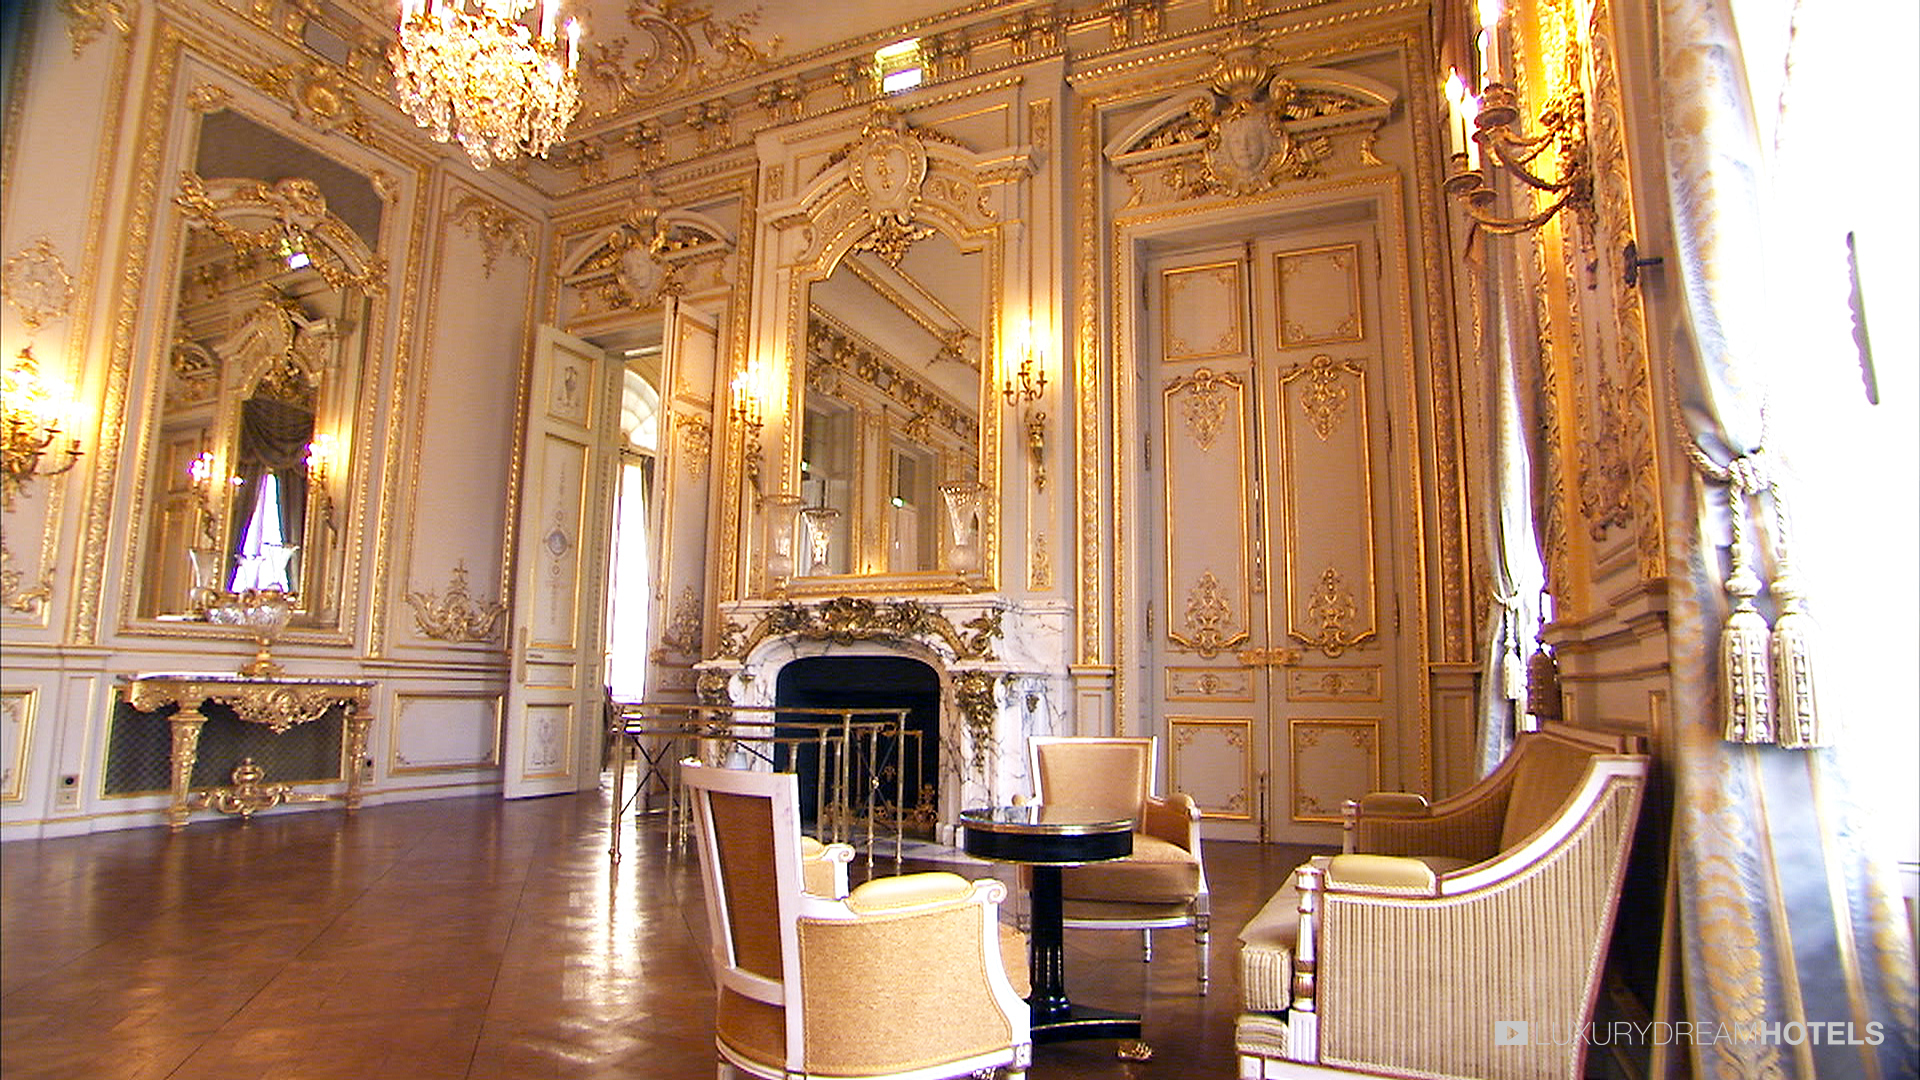 Paris hotels luxury for Luxury hotels paris france